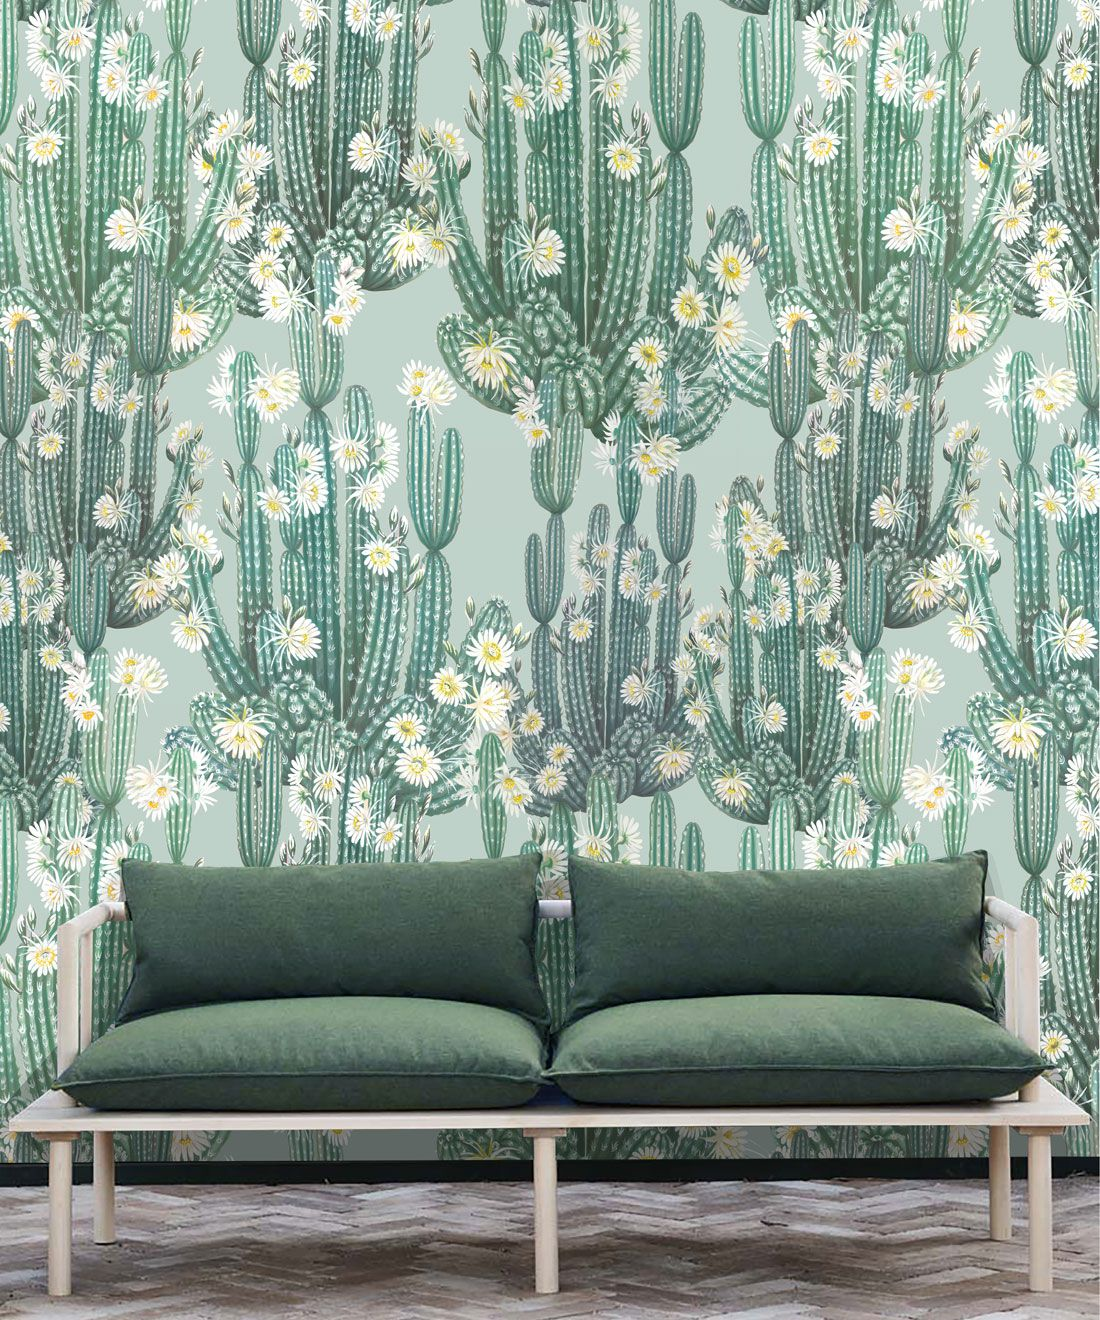 San Pedro Wallpaper Aqua • Cactus Wallpaper • Succulents Wallpaper • Desert Wallpaper Insitu behind sofa with green cushions